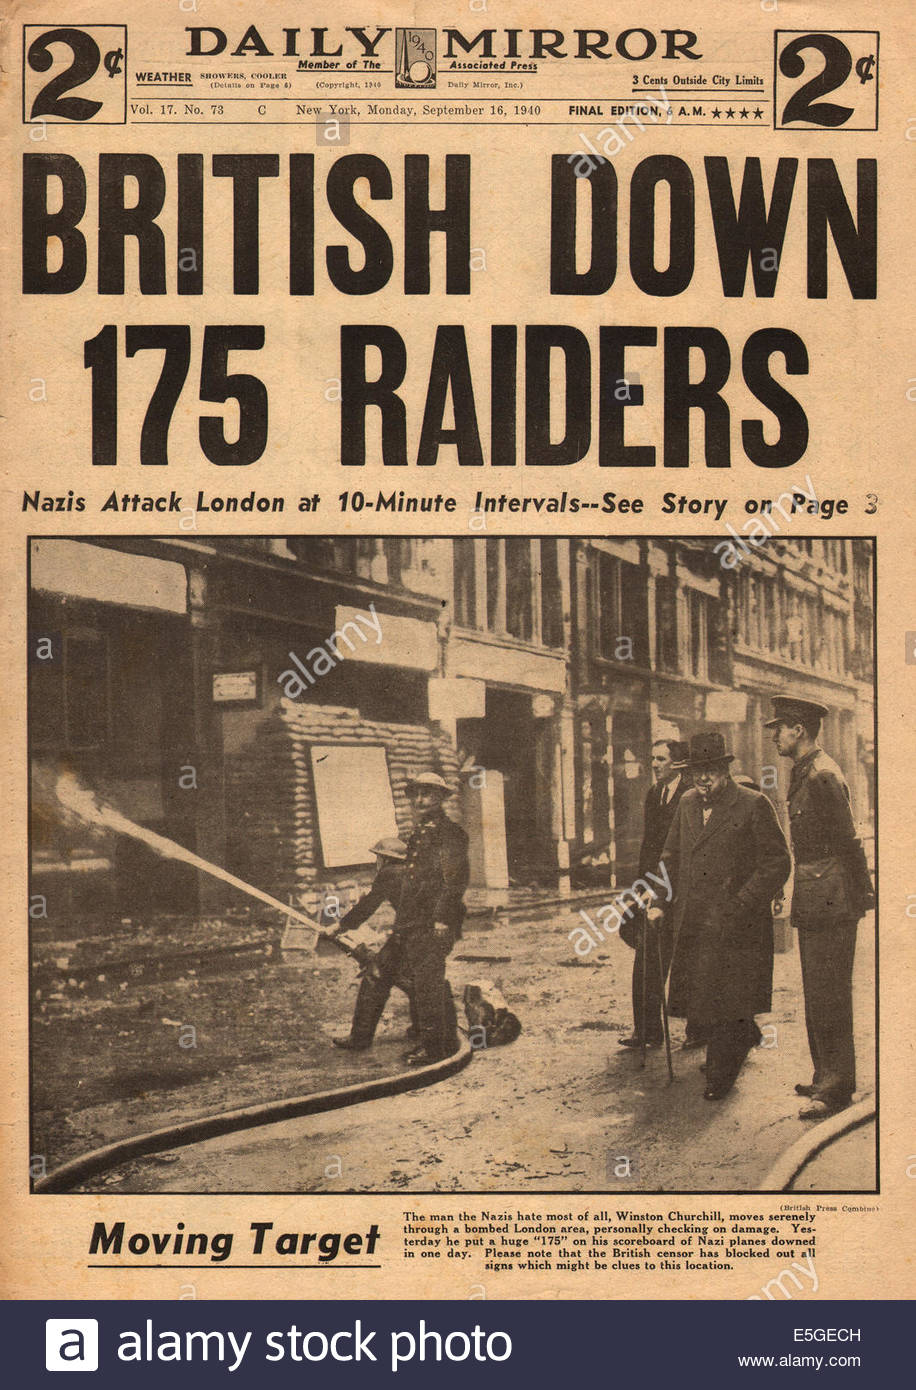 1940 Daily Mirror New York Front Page Reporting Battle